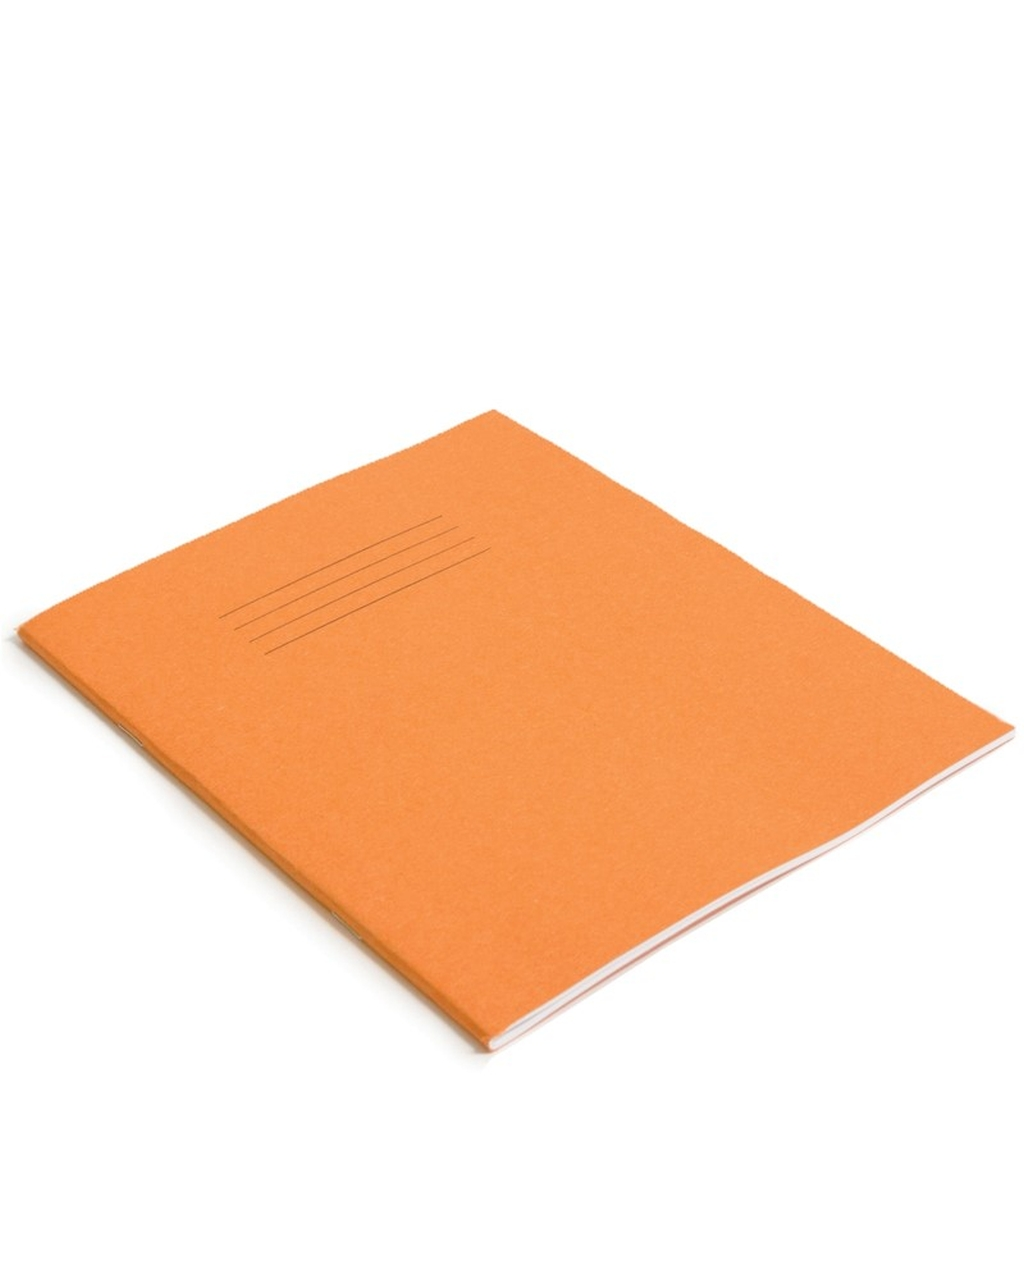 Exercise Book 9 x 7 (229 x 178mm) Orange Cover Plain - No Ruling 48 Pages